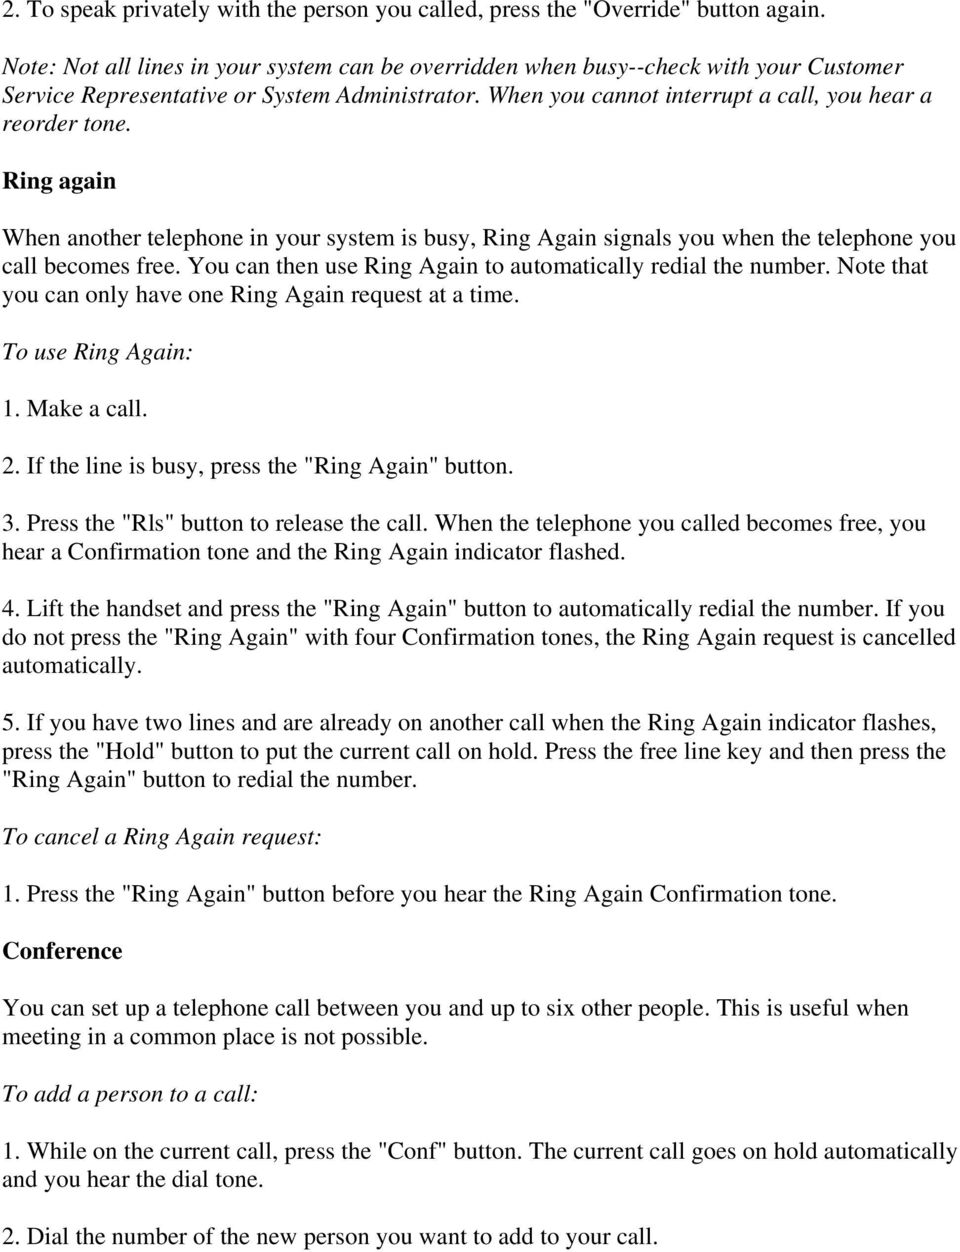 Ring again When another telephone in your system is busy, Ring Again signals you when the telephone you call becomes free. You can then use Ring Again to automatically redial the number.